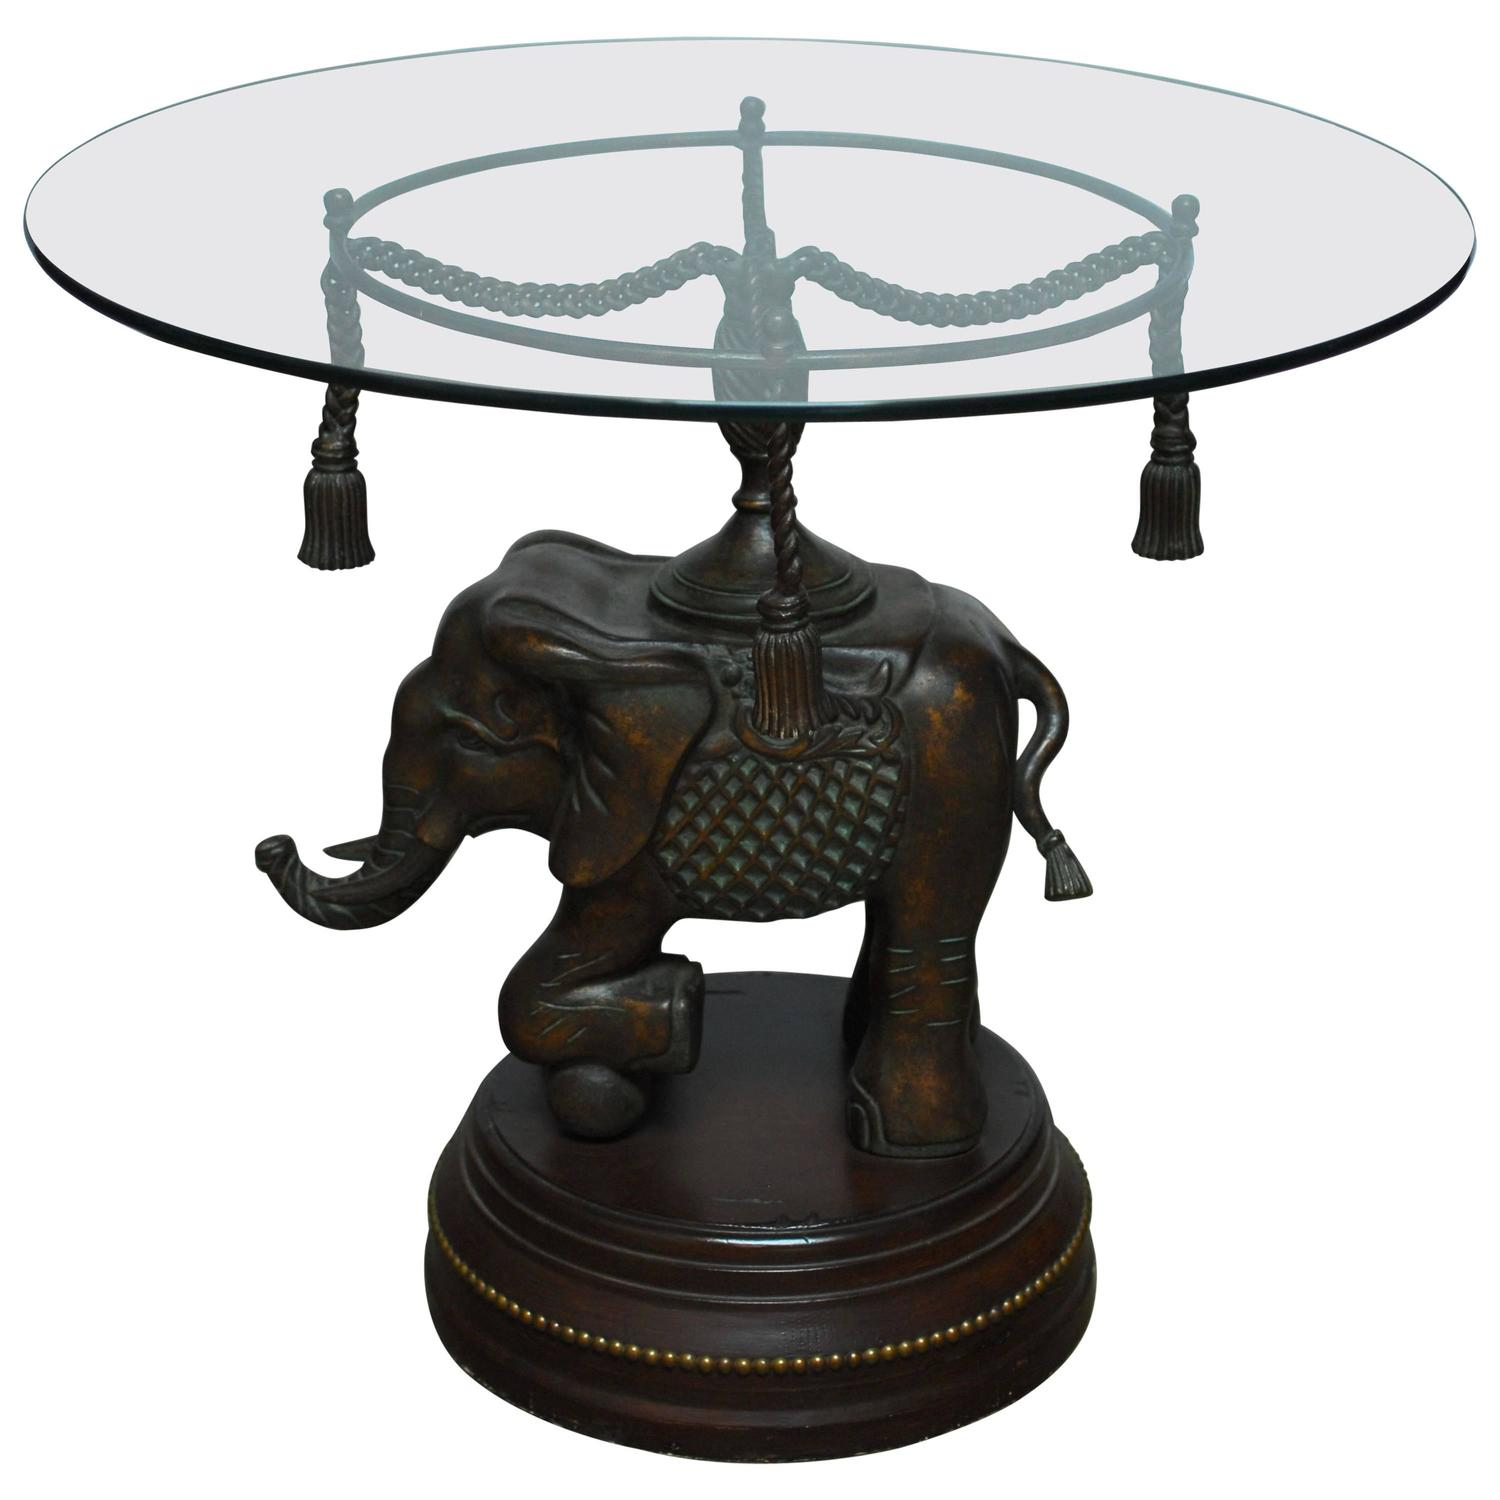 bronze elephant pedestal side table for narrow accent hand painted wood mosaic laminate primer studded dining chairs small kidney shaped inch wide console pier imports lamps